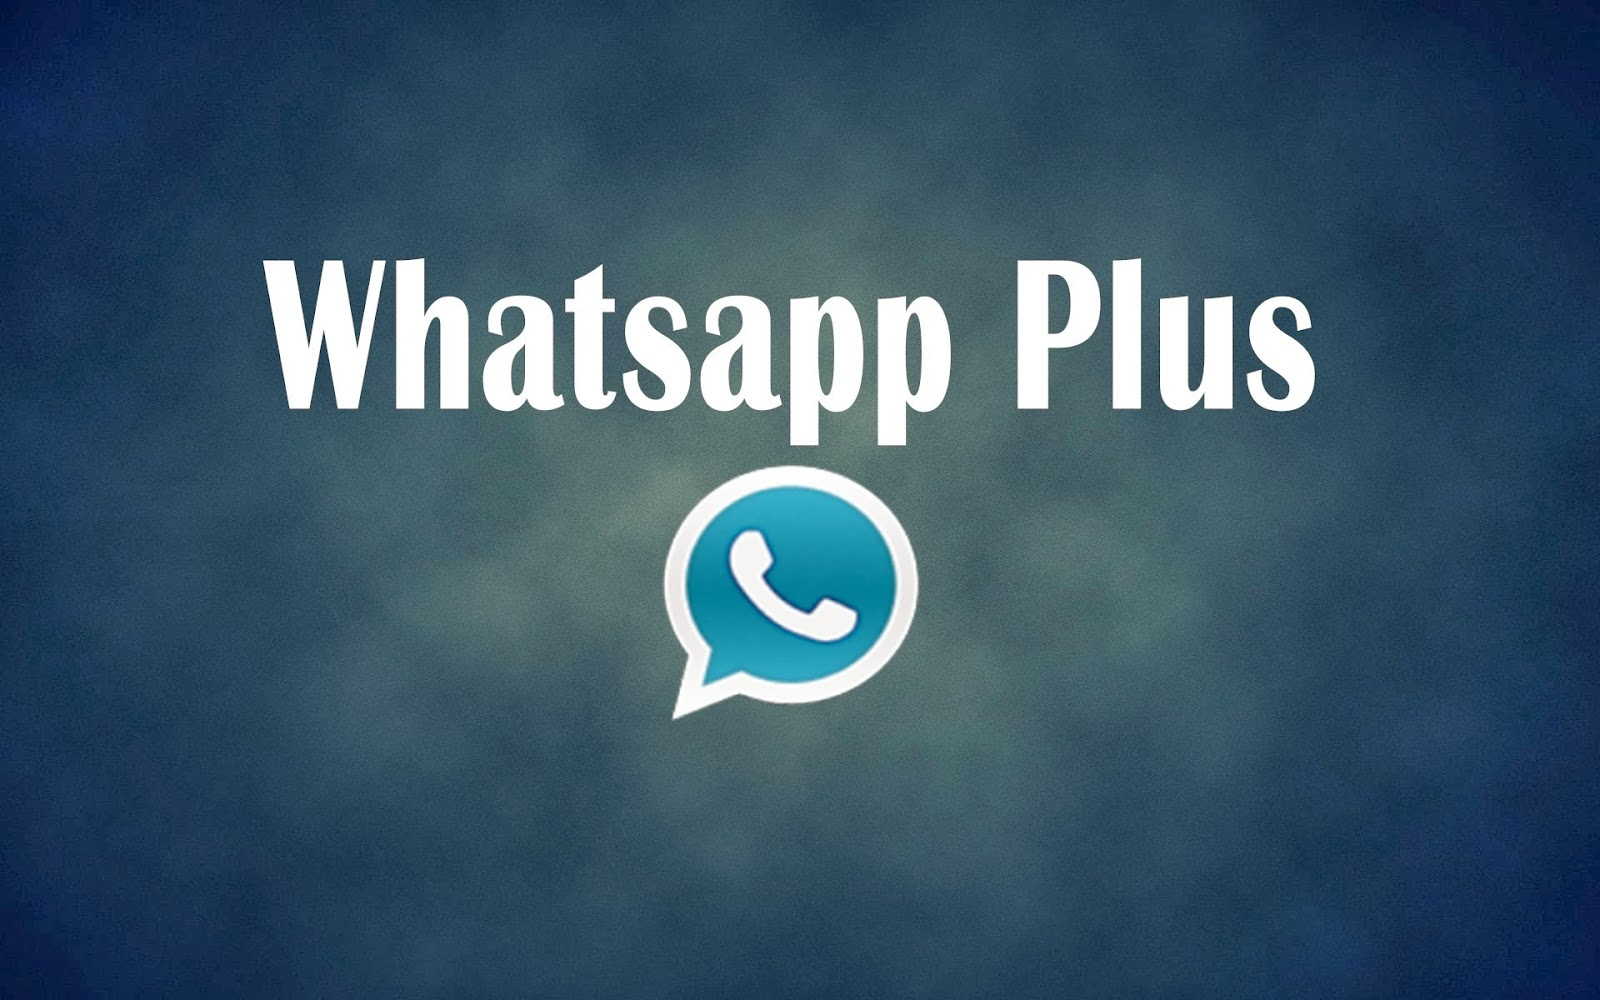 WhatsApp cease and desist shuts down WhatsApp Plus as users are banned for 24 hours